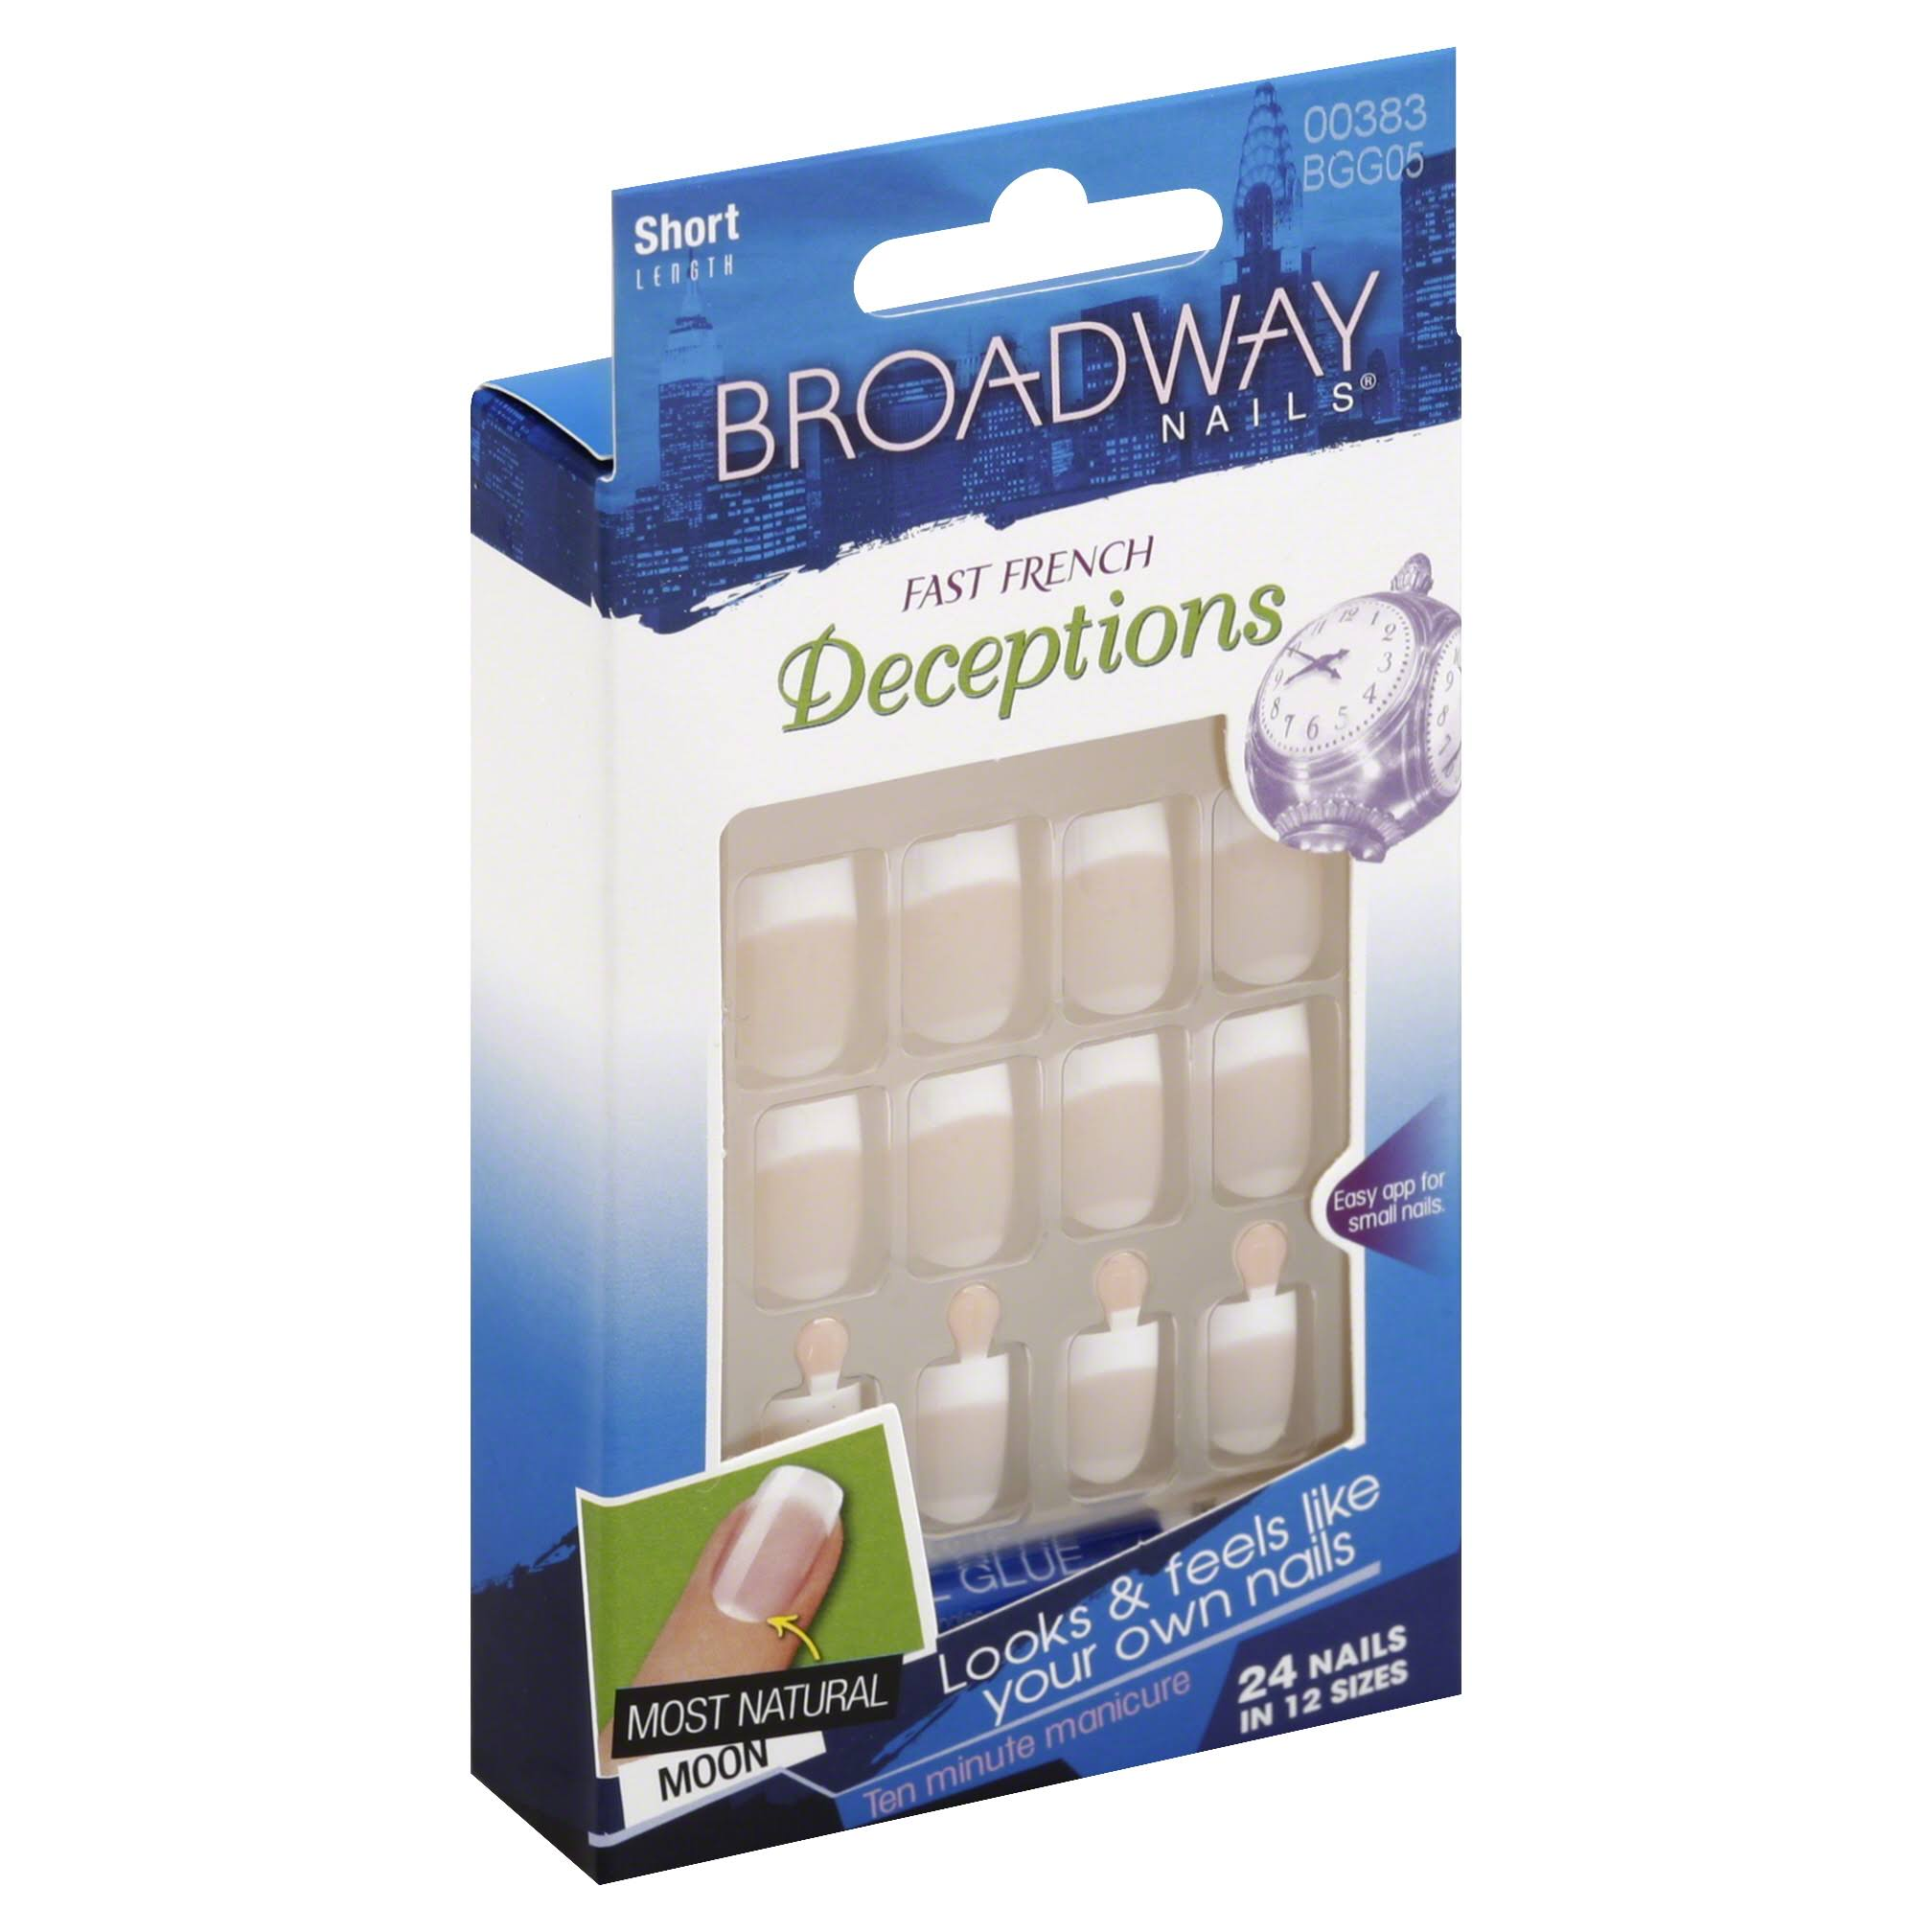 Broadway Nails Fast French Deceptions - 24 Nails